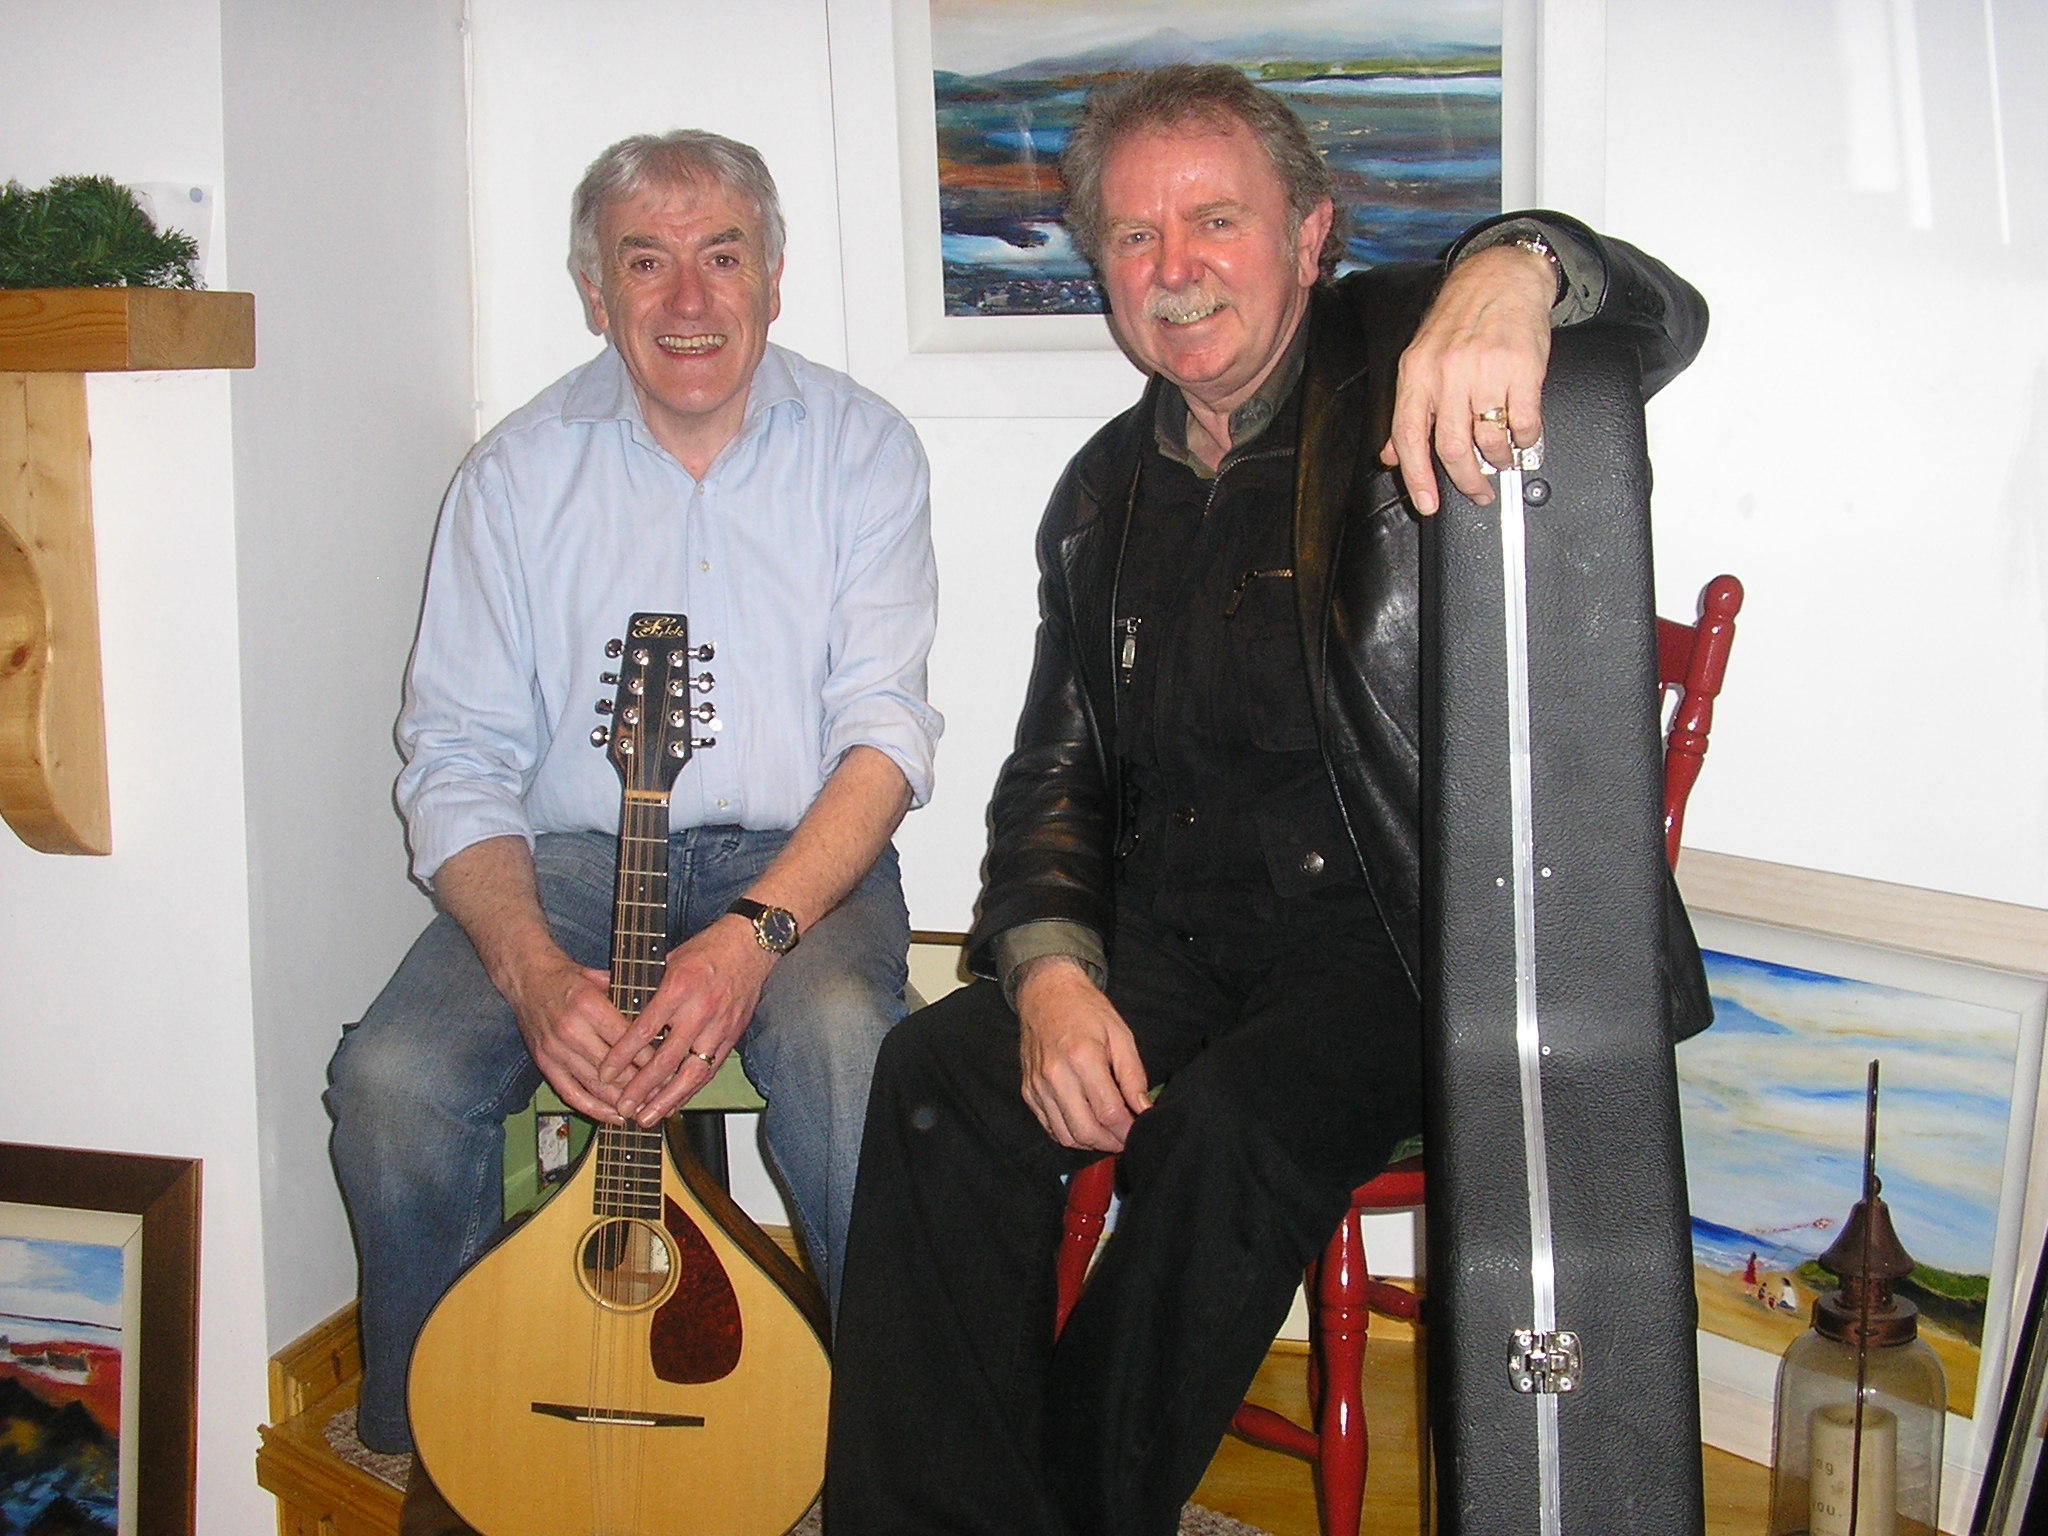 Seán Donnelly with Ben Sands